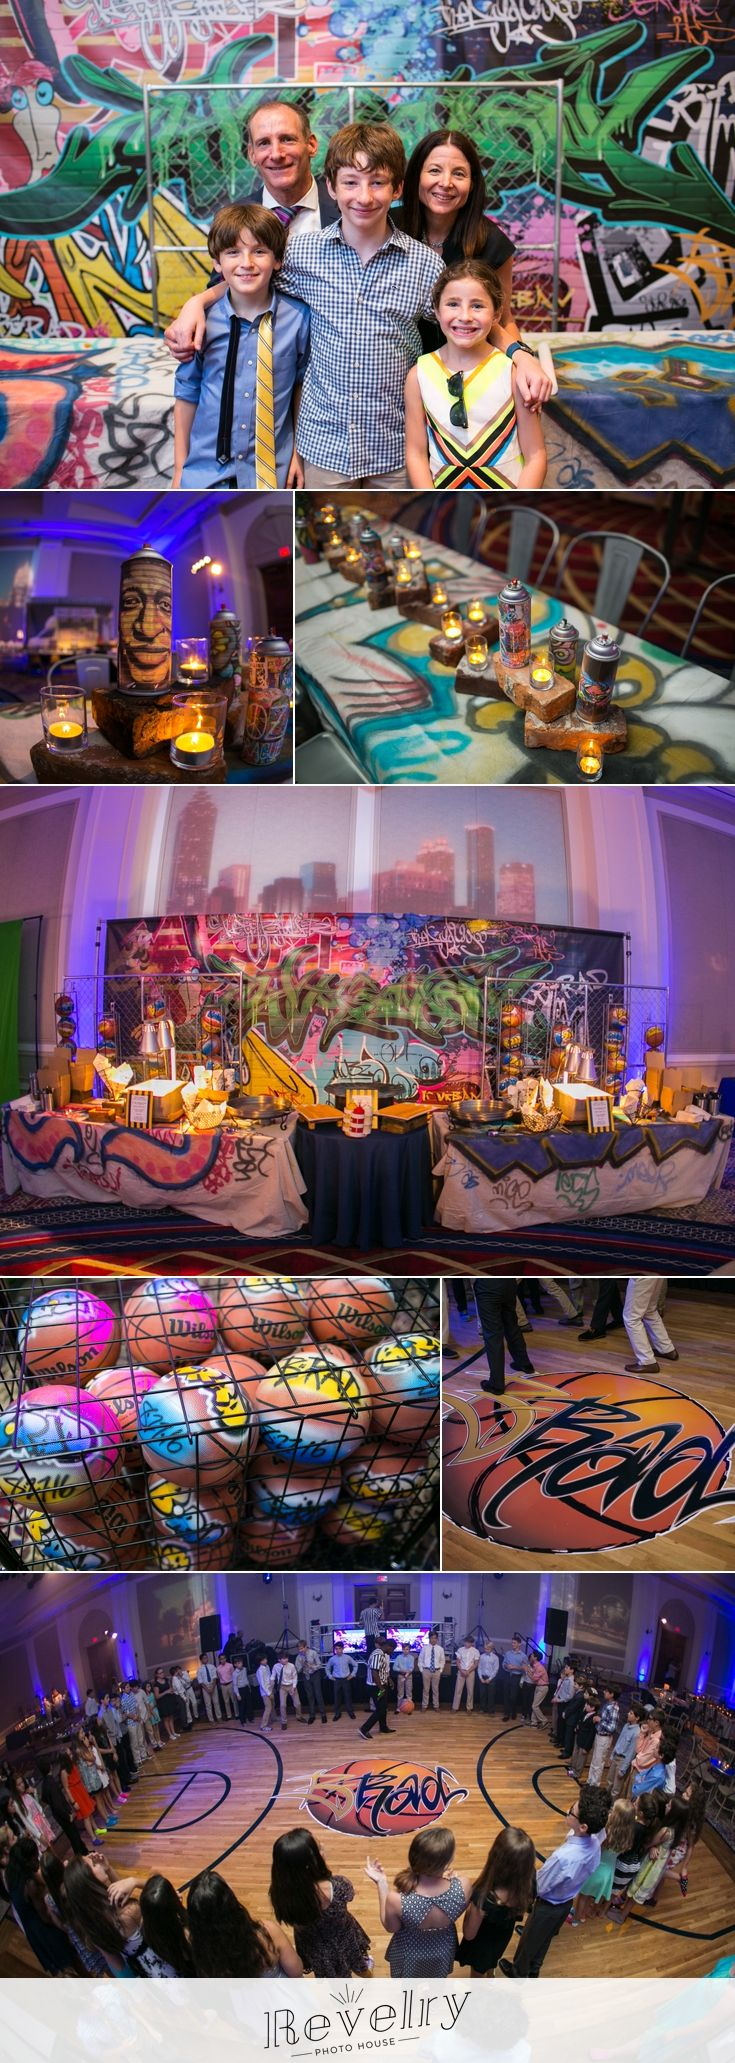 Bradley's graffiti mitzvah - featuring food truck themed food stations, custom tablecloths, and spray painted basketballs as favors